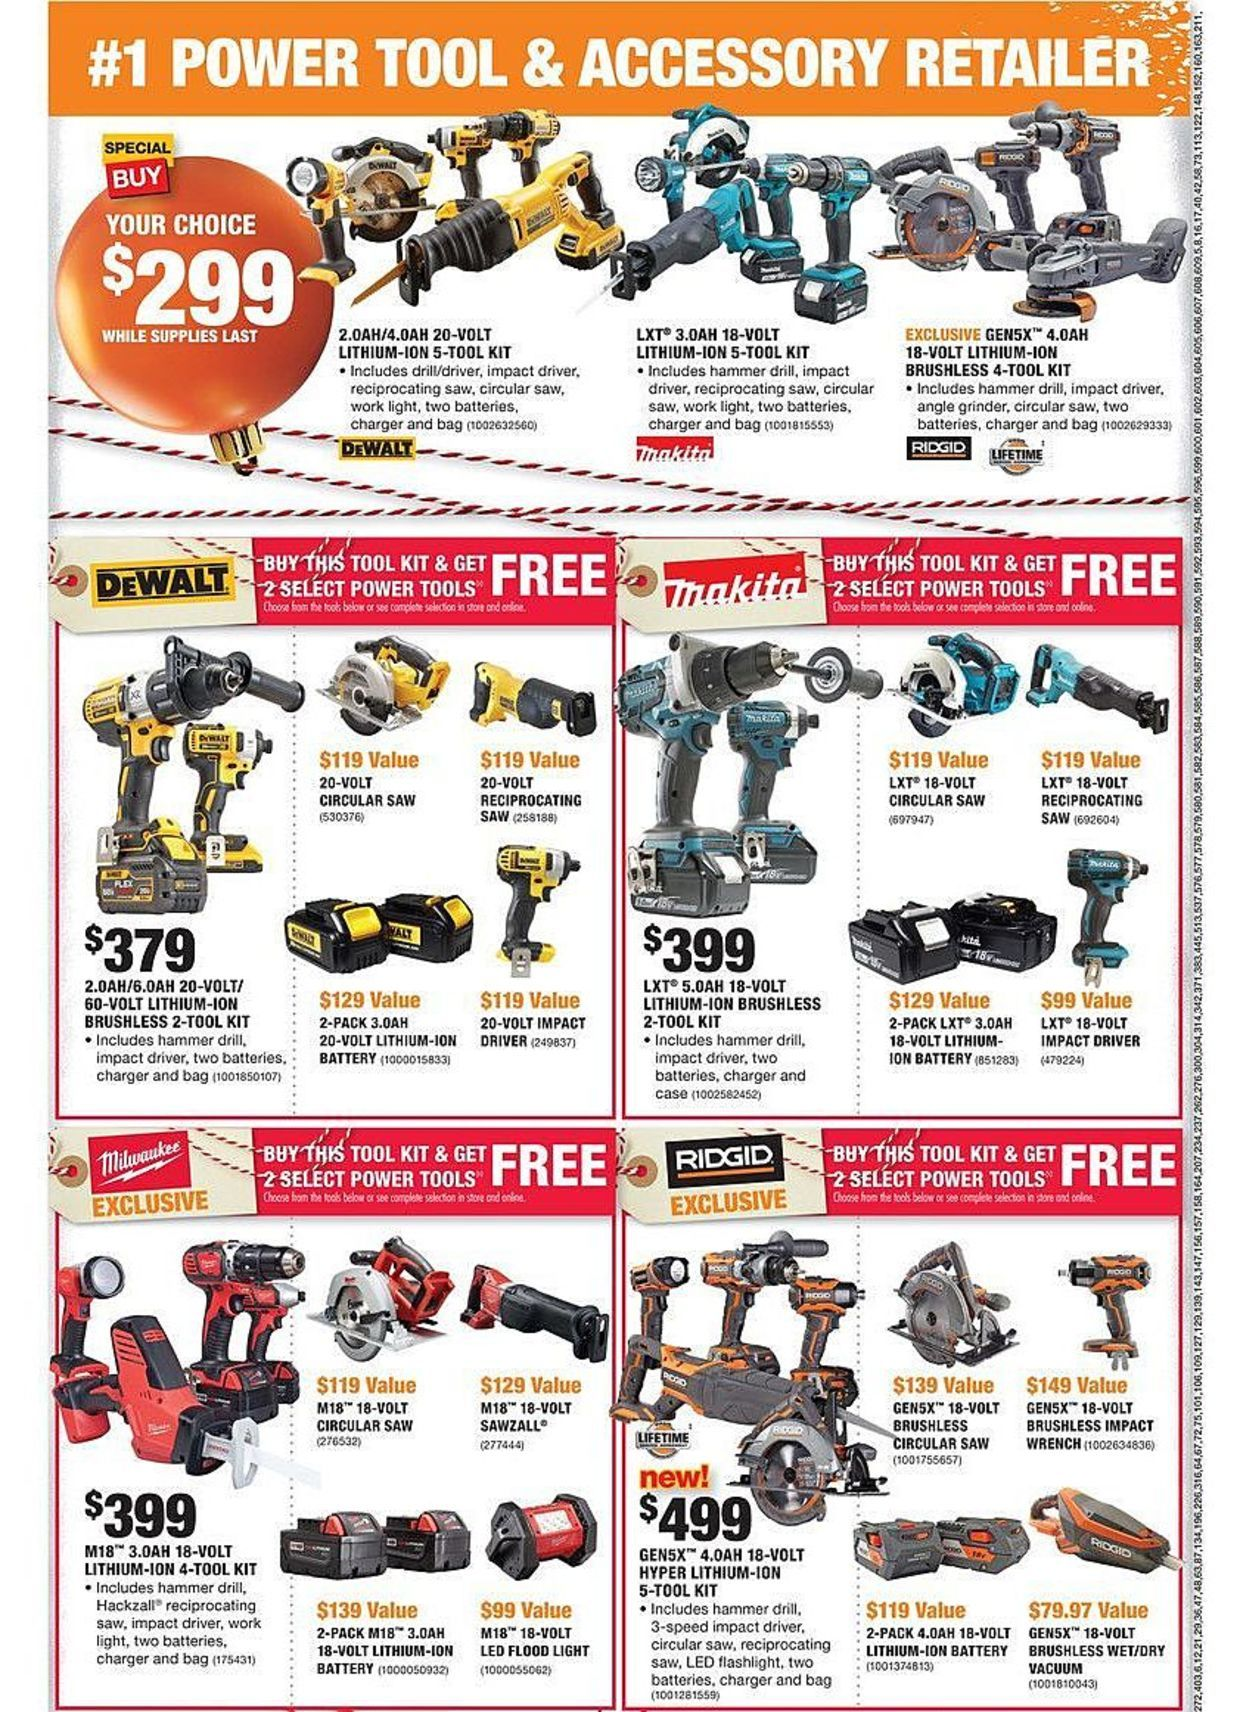 Home Depot Black Friday 2018 Ads And Deals Browse The Home Depot Black Friday 2018 Ad Scan And The Complete Product By Product Sales Listing Homedepot Black